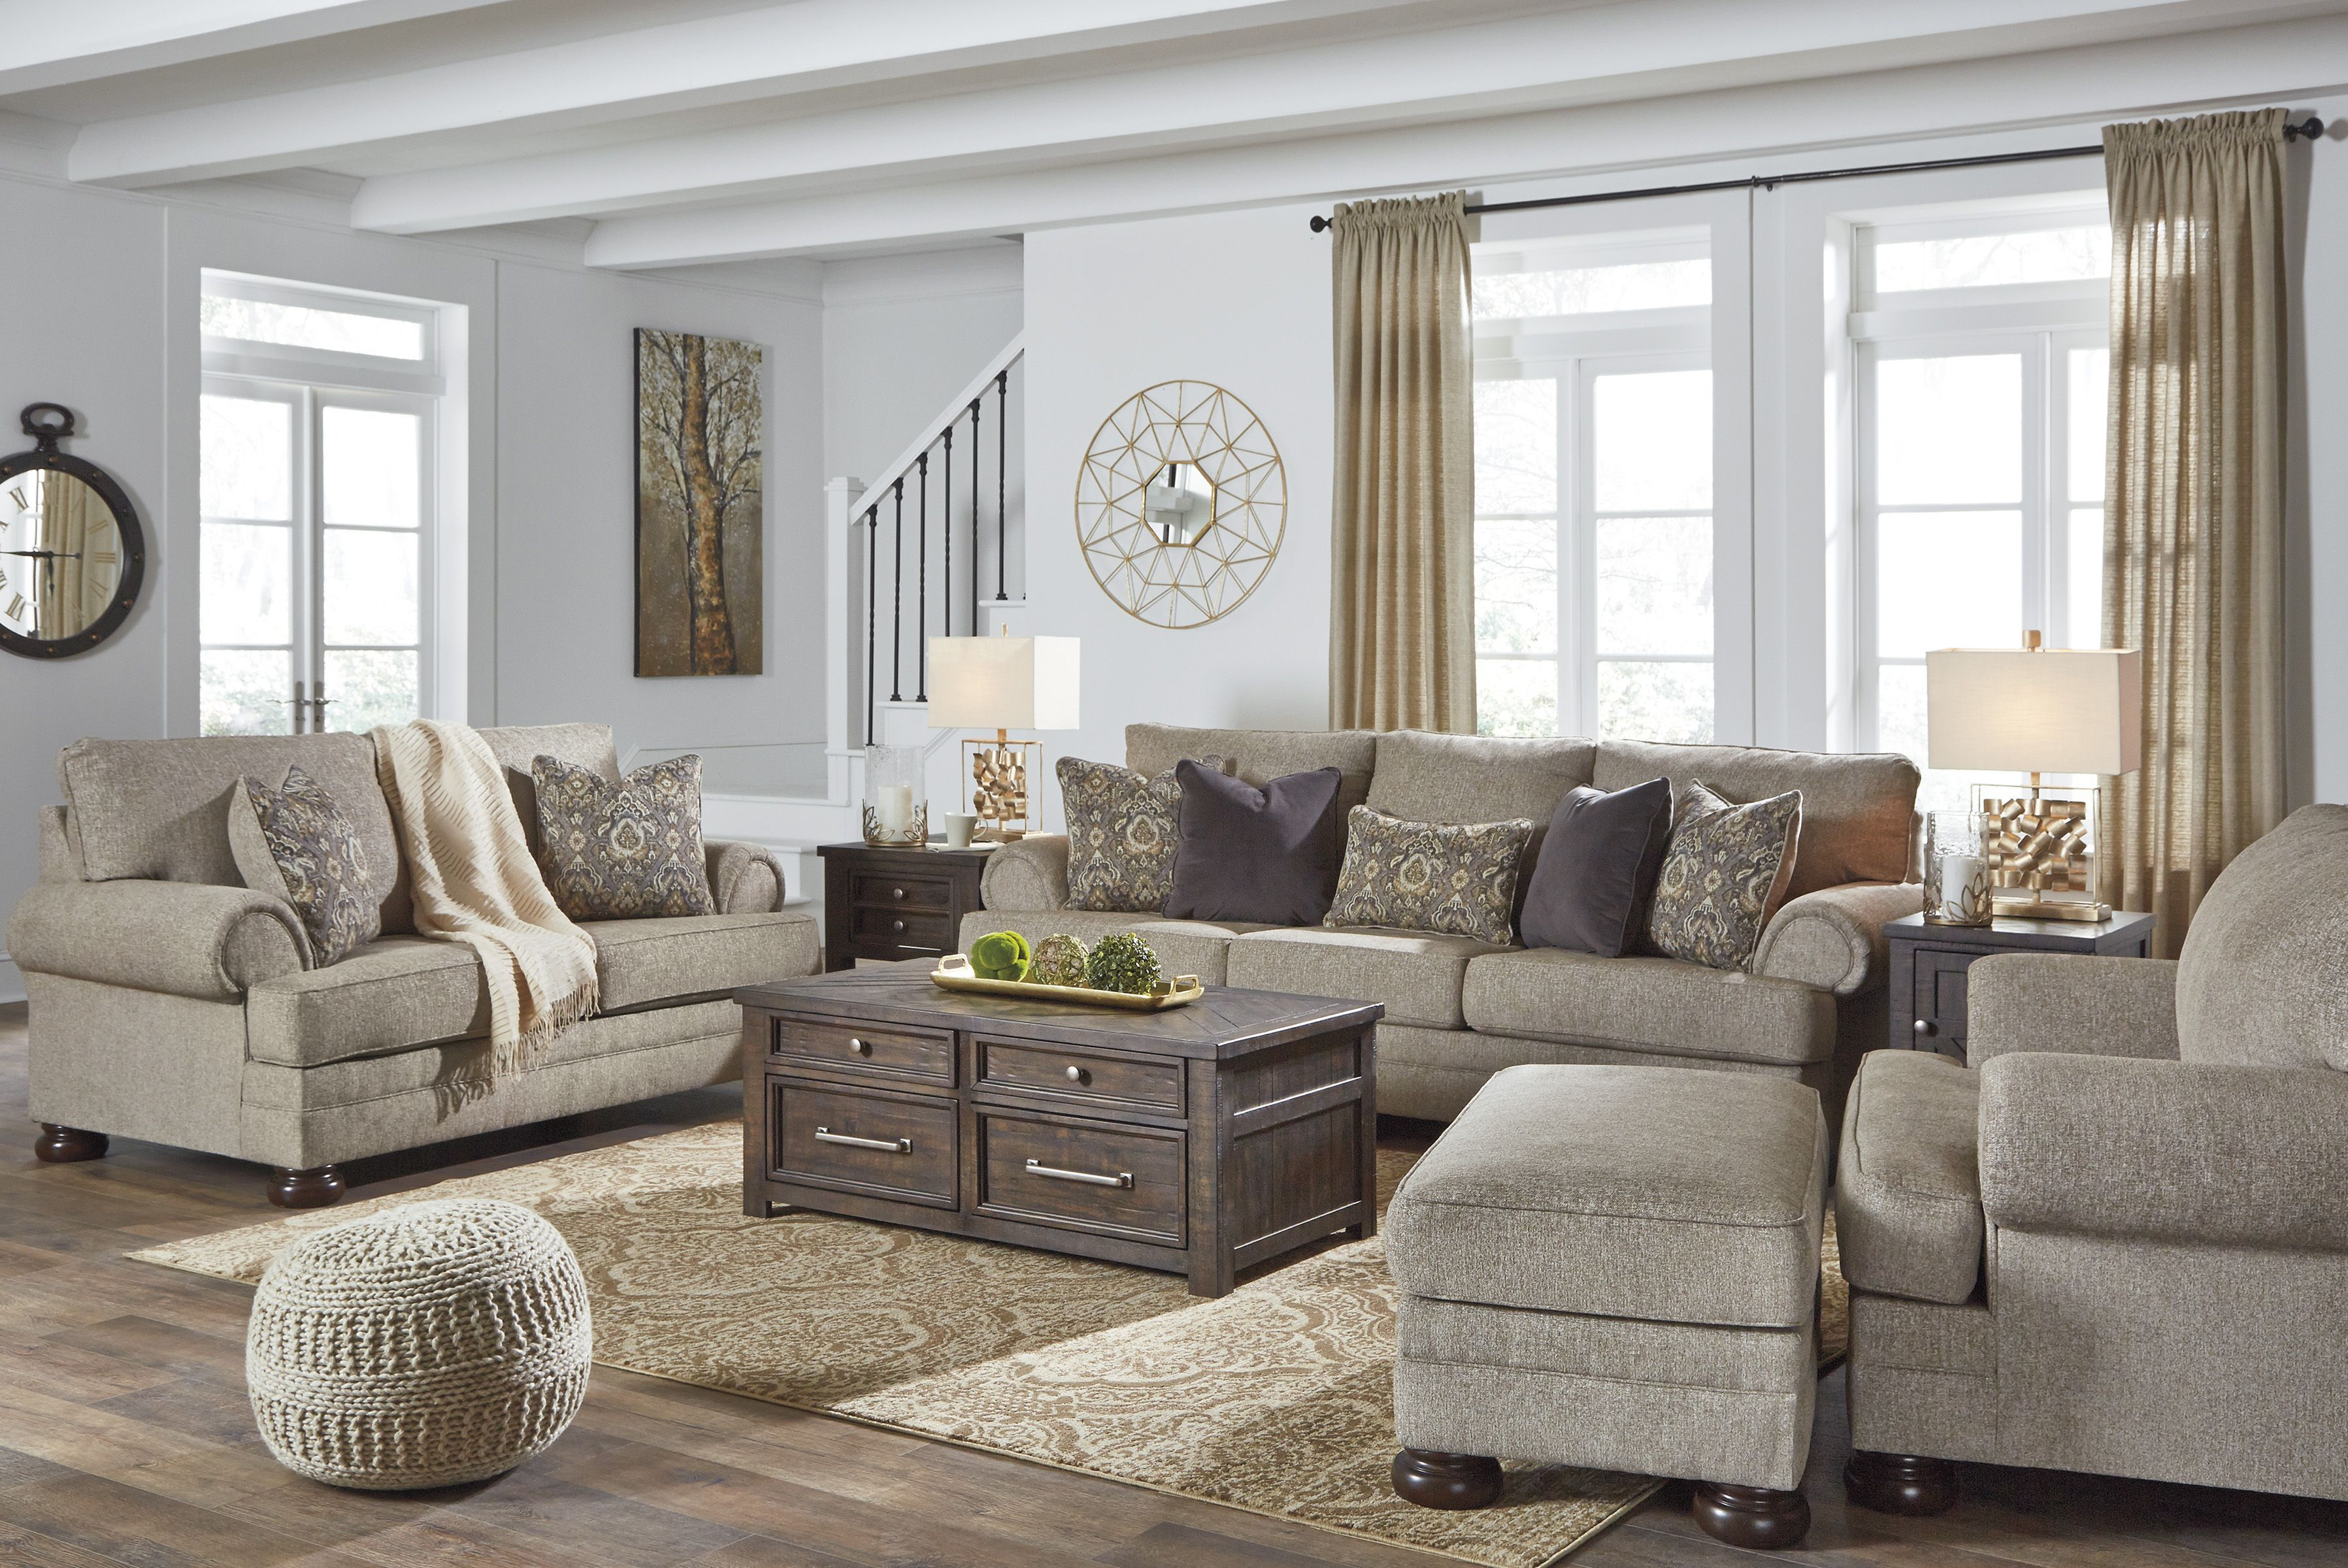 Sink Into Comfort With The Kananwood Collection With More Than 103 Inches Of Stretch O Living Room Sets Elegant Living Room Decor Pallet Furniture Living Room #oatmeal #sofa #living #room #ideas